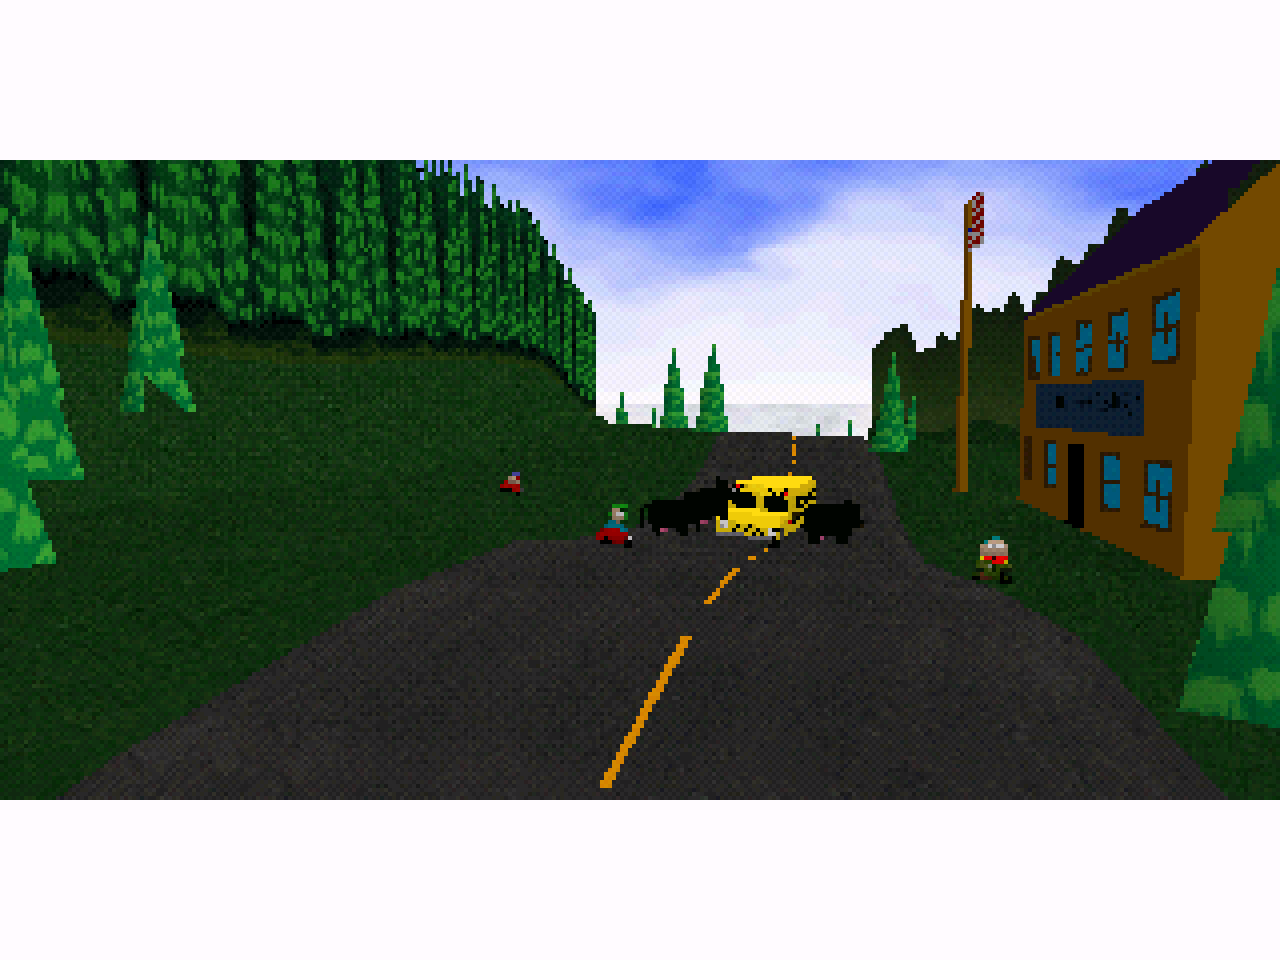 https://s3.eu-west-3.amazonaws.com/games.anthony-dessalles.com/South Park Rally PS1 2020 - Screenshots/South Park Rally-201125-180609.png